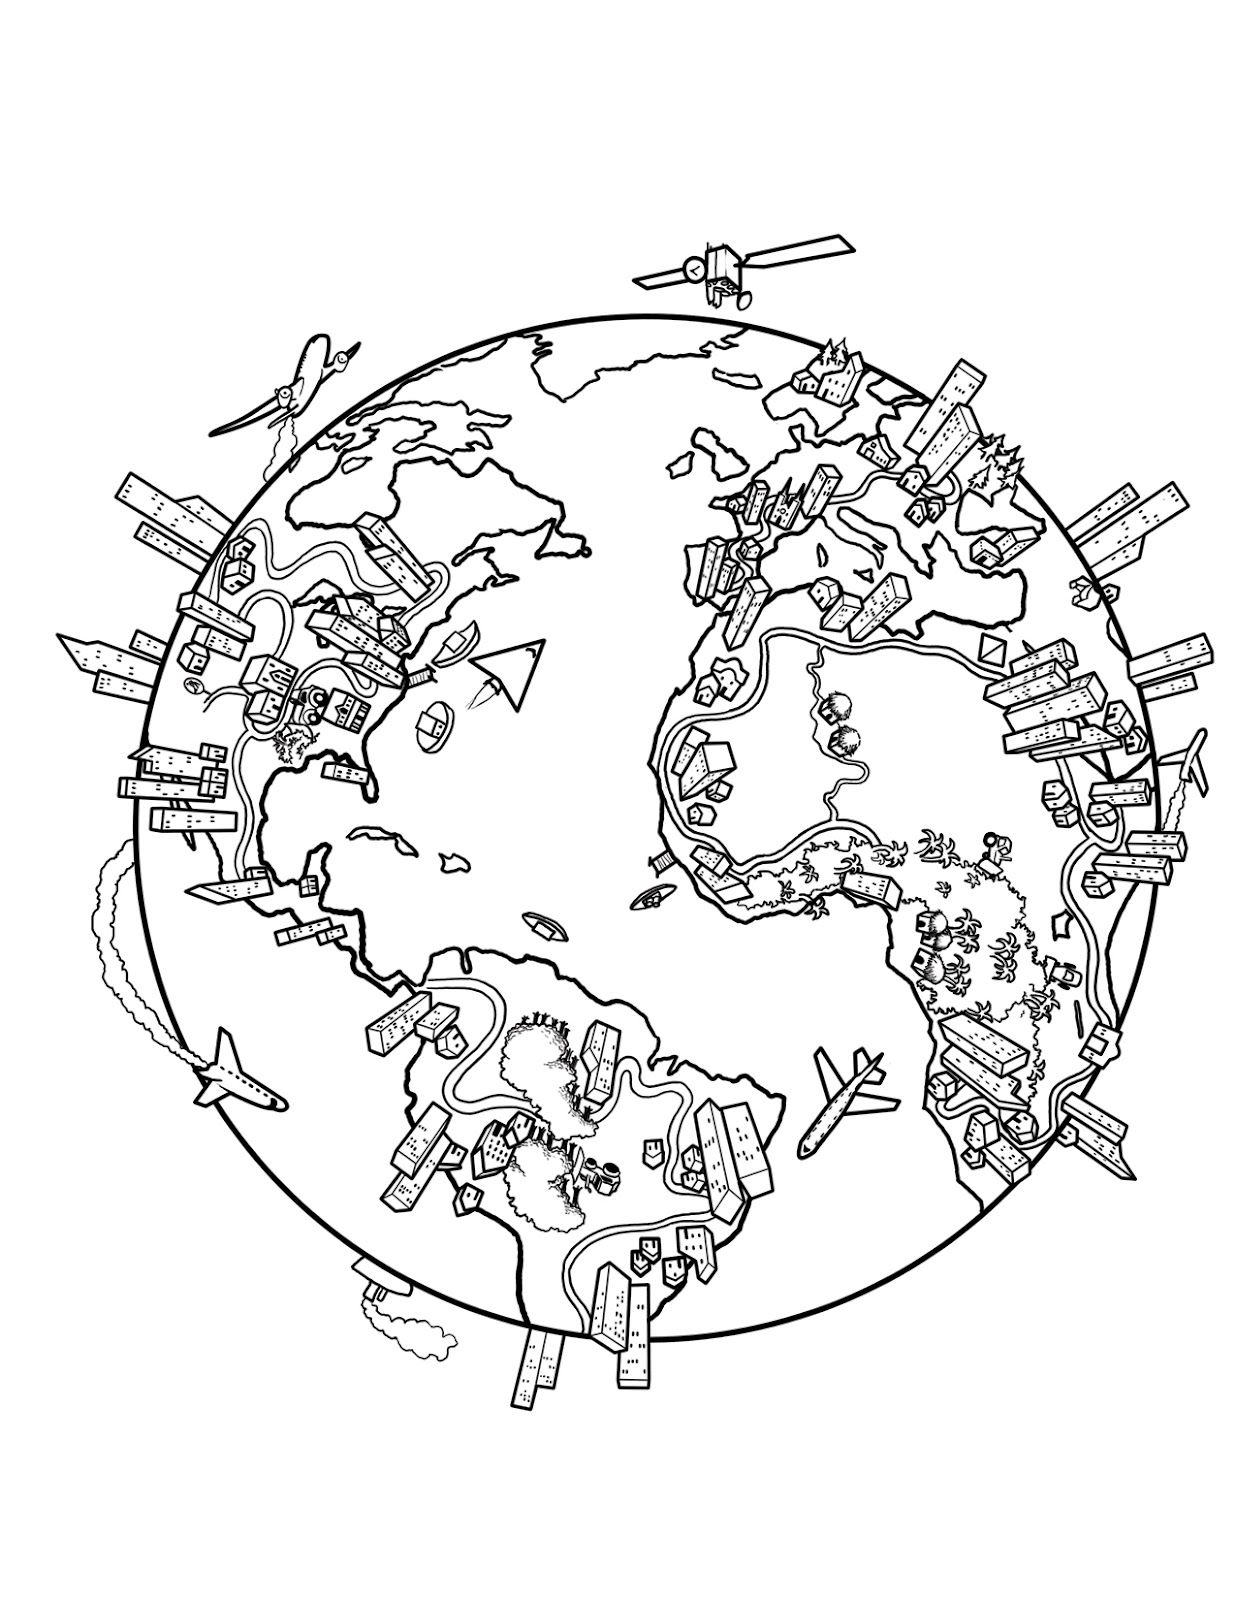 World map coloring page this is a drawing i did a while back world map coloring page this is a drawing i did a while back gumiabroncs Image collections